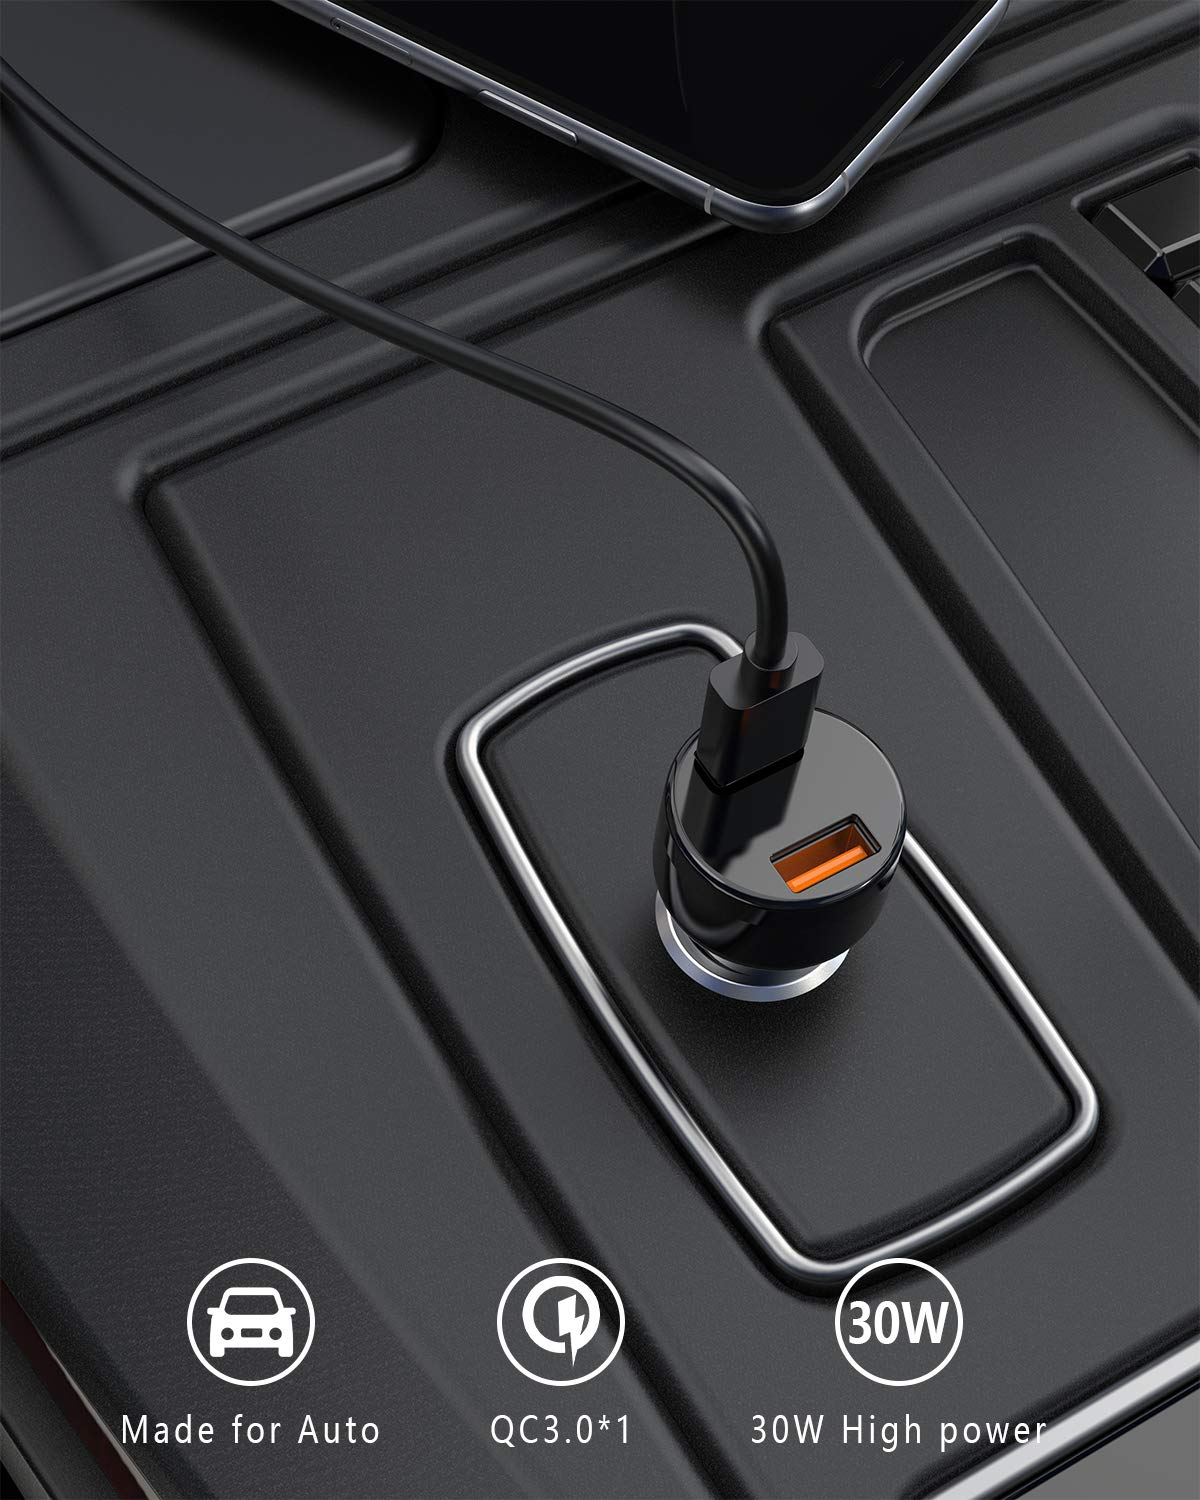 Nokia 8 Plus more Votec Compatible 2.1 AMP USB 3.1 Type C Rubberized Car Charger for Galaxy S9 S8 Note 8 Nexus 5 X 6P Pixel 2 Zmax Pro LG G6 V20 V30 Moto G6 Z2 Play Force ZTE Max XL International Wireless VPIC2WH